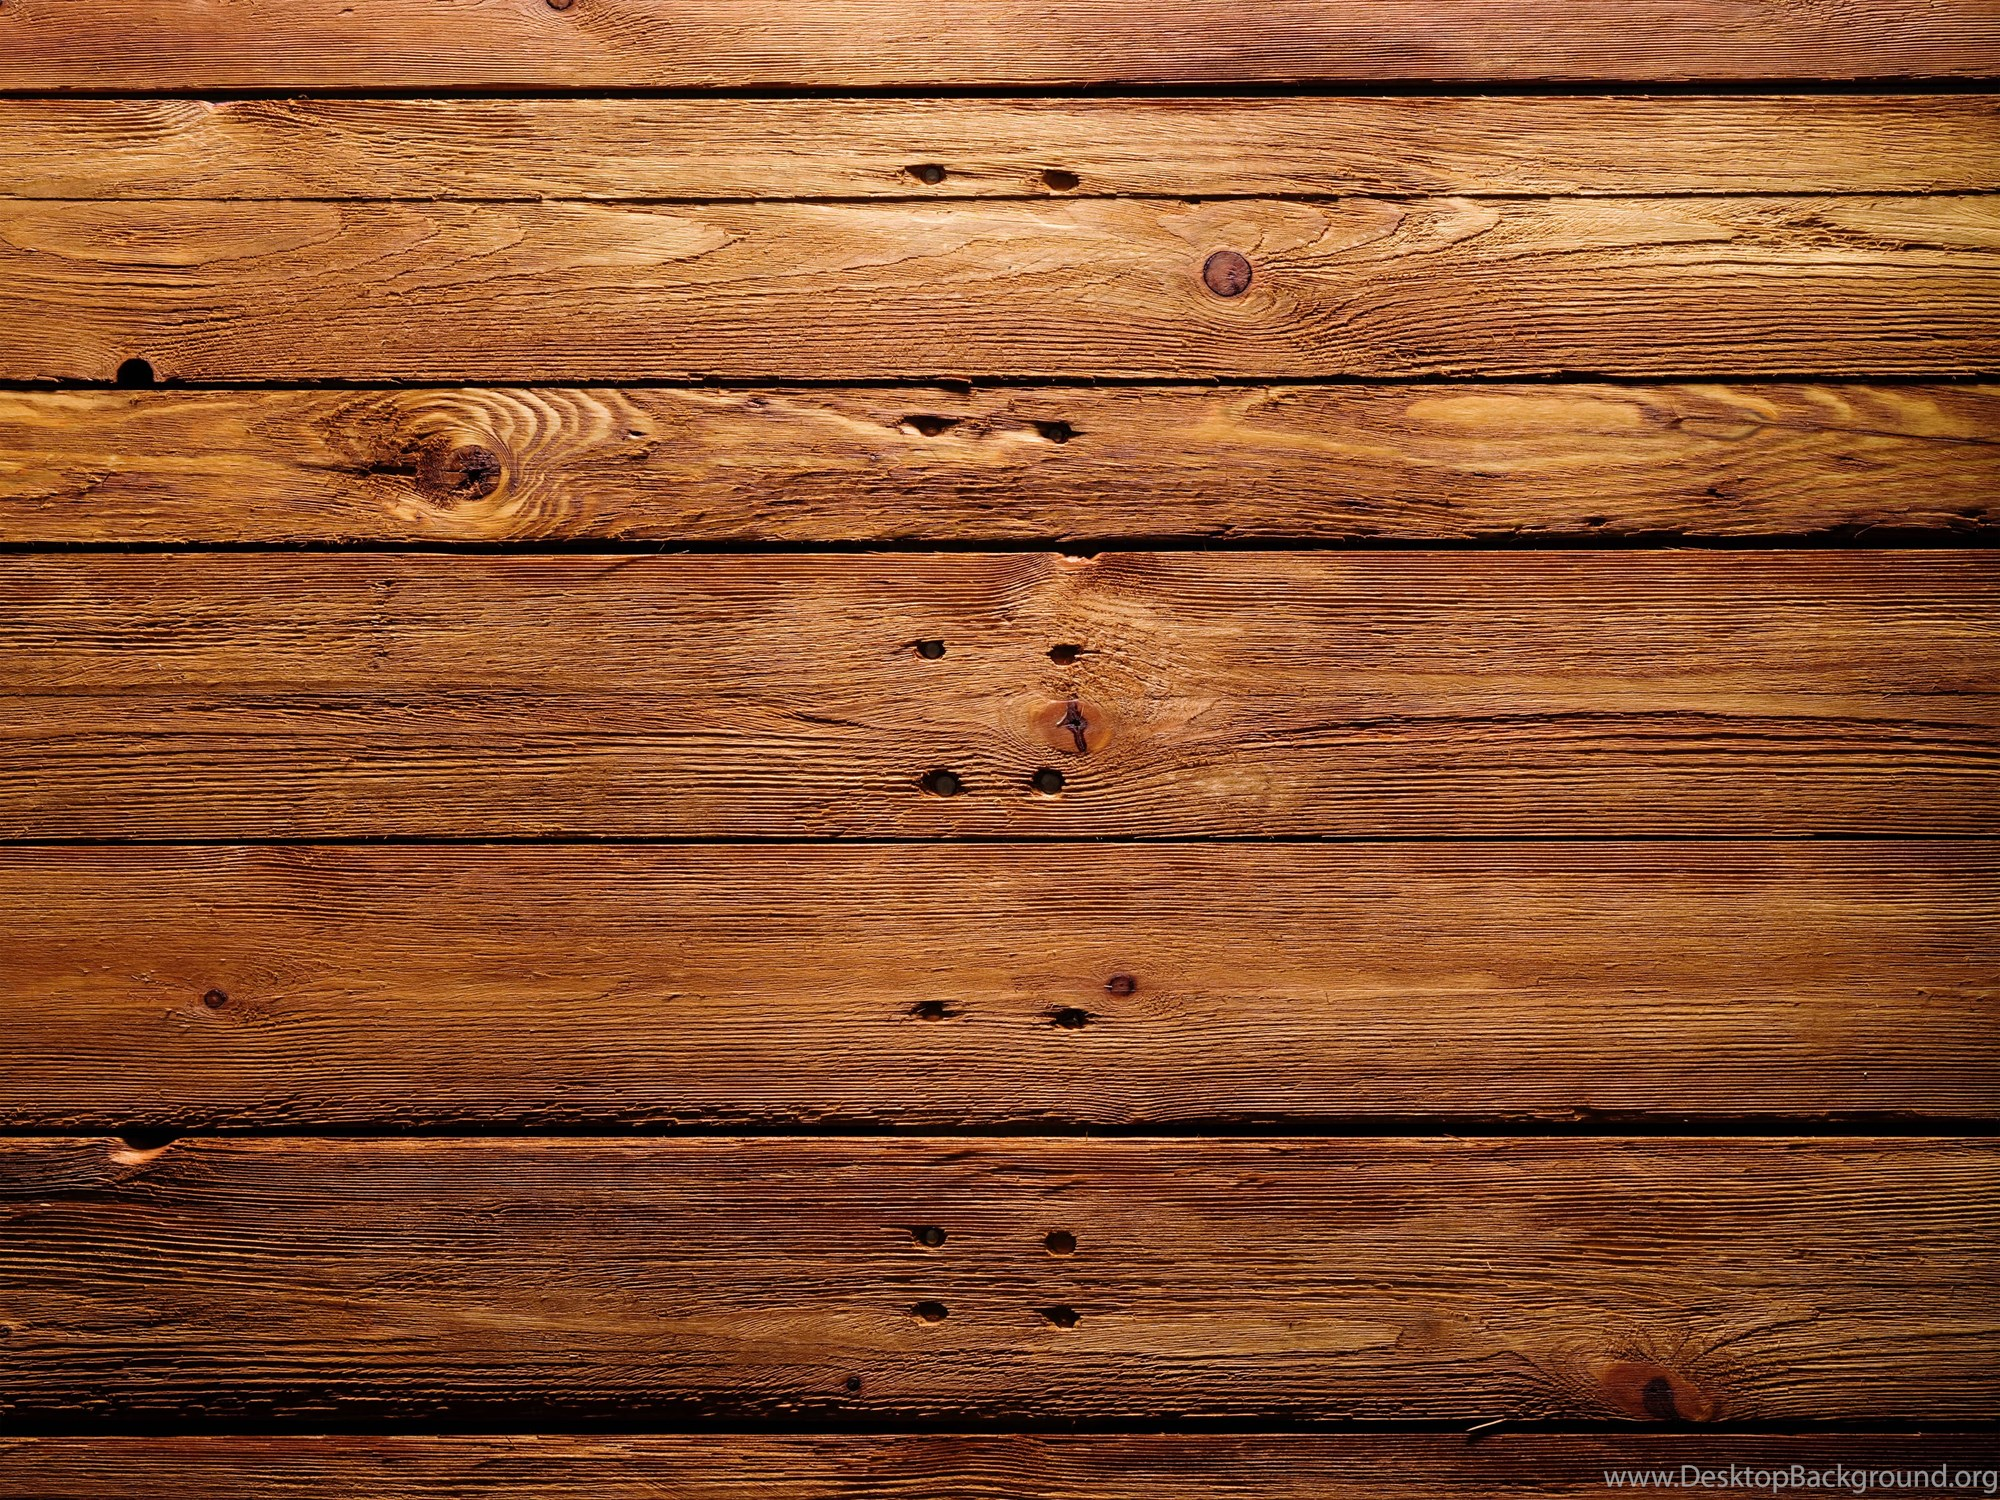 Wood Burl Texture Rough Cracked Natural Wooden Wallpaper.jpg ...